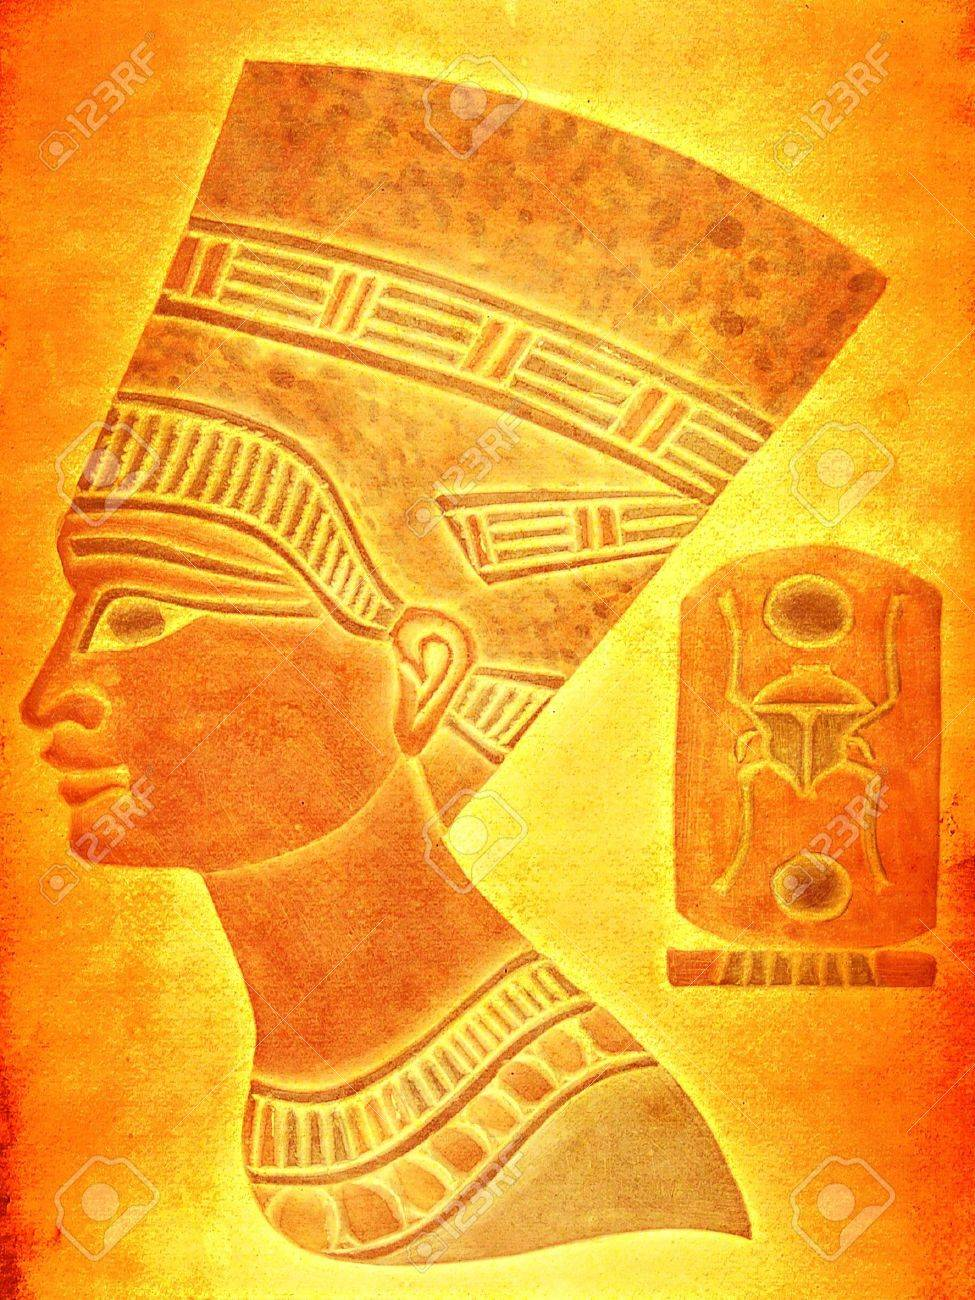 Portrait Of Nefertiti With An Ancient Egyption Symbol Stock Photo ...